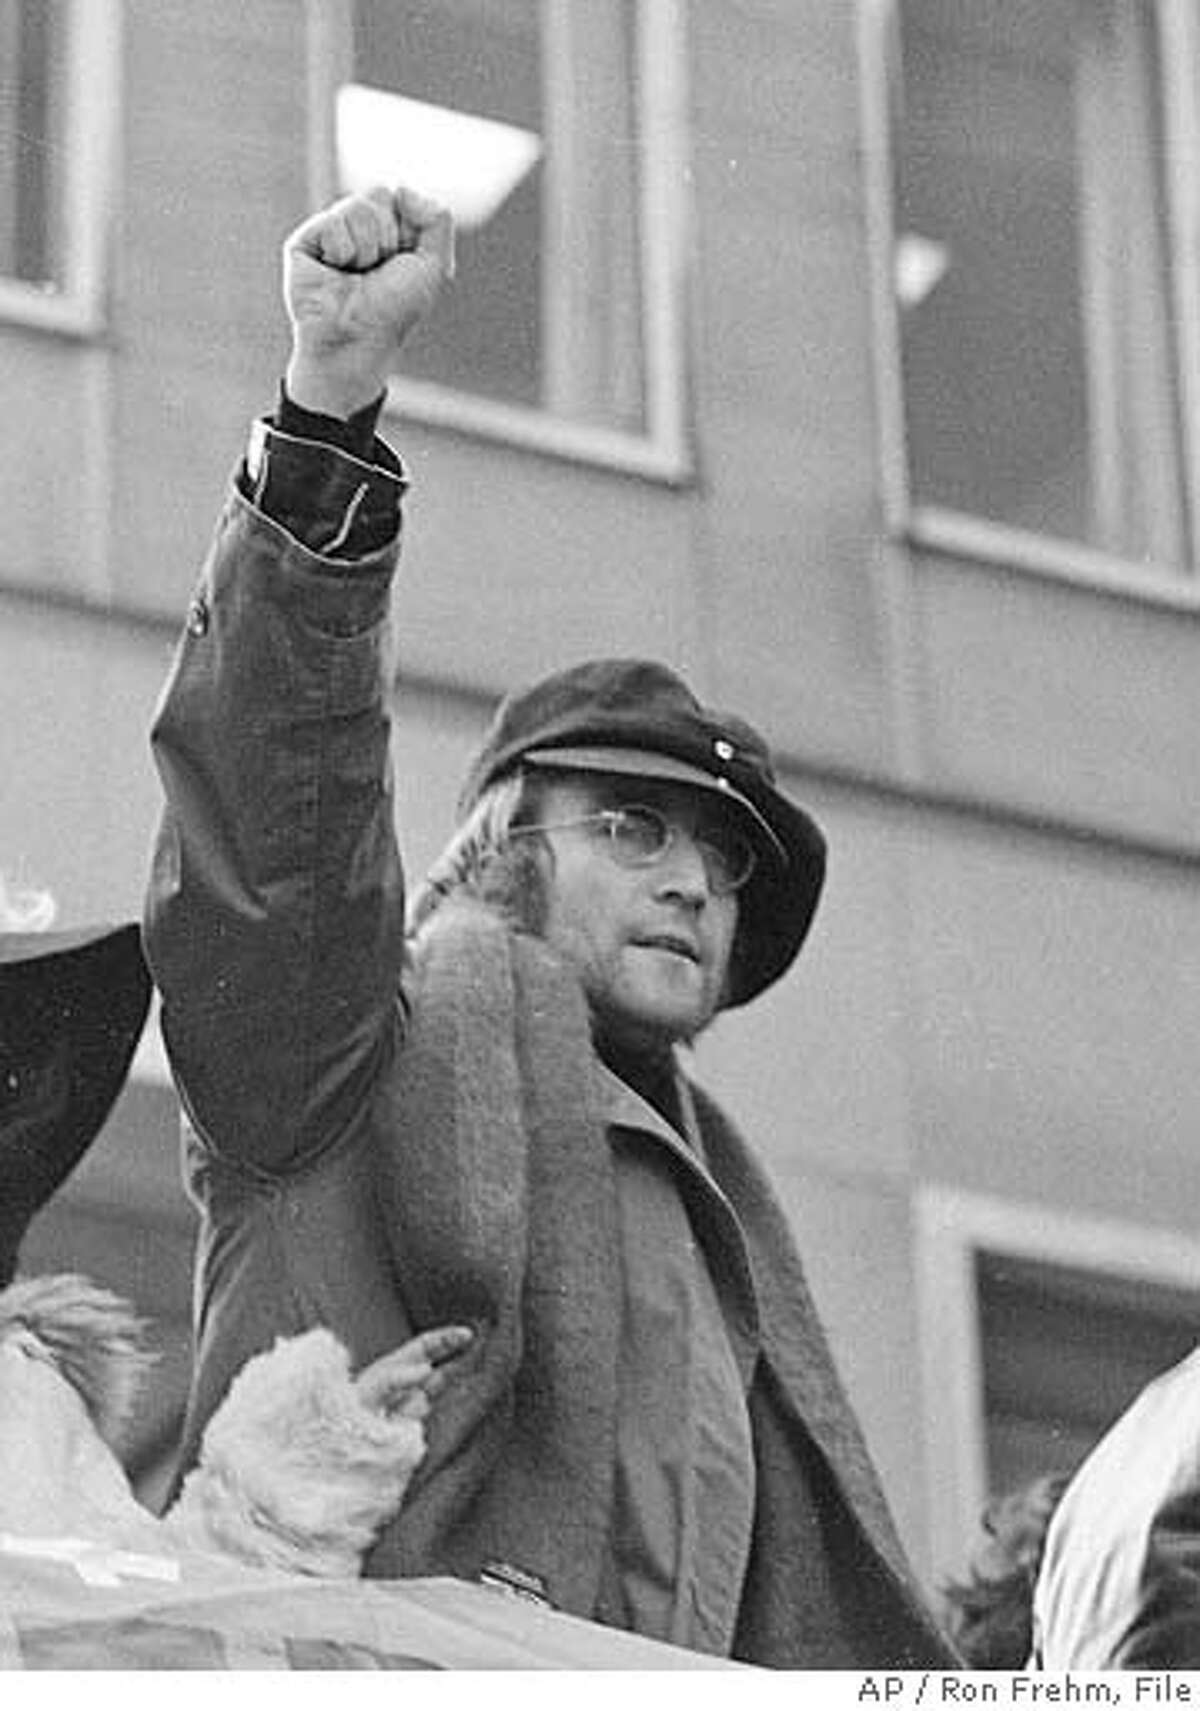 ** FILE ** John Lennon and his wife Yoko Ono raise their fists as they join a protest in this Feb. 5, 1972, file photo in front of British Overseas Airways Corp. offices in New York on Fifth Avenue. The demonstrators called for the withdrawal of British troops from Northern Ireland. The documentary,